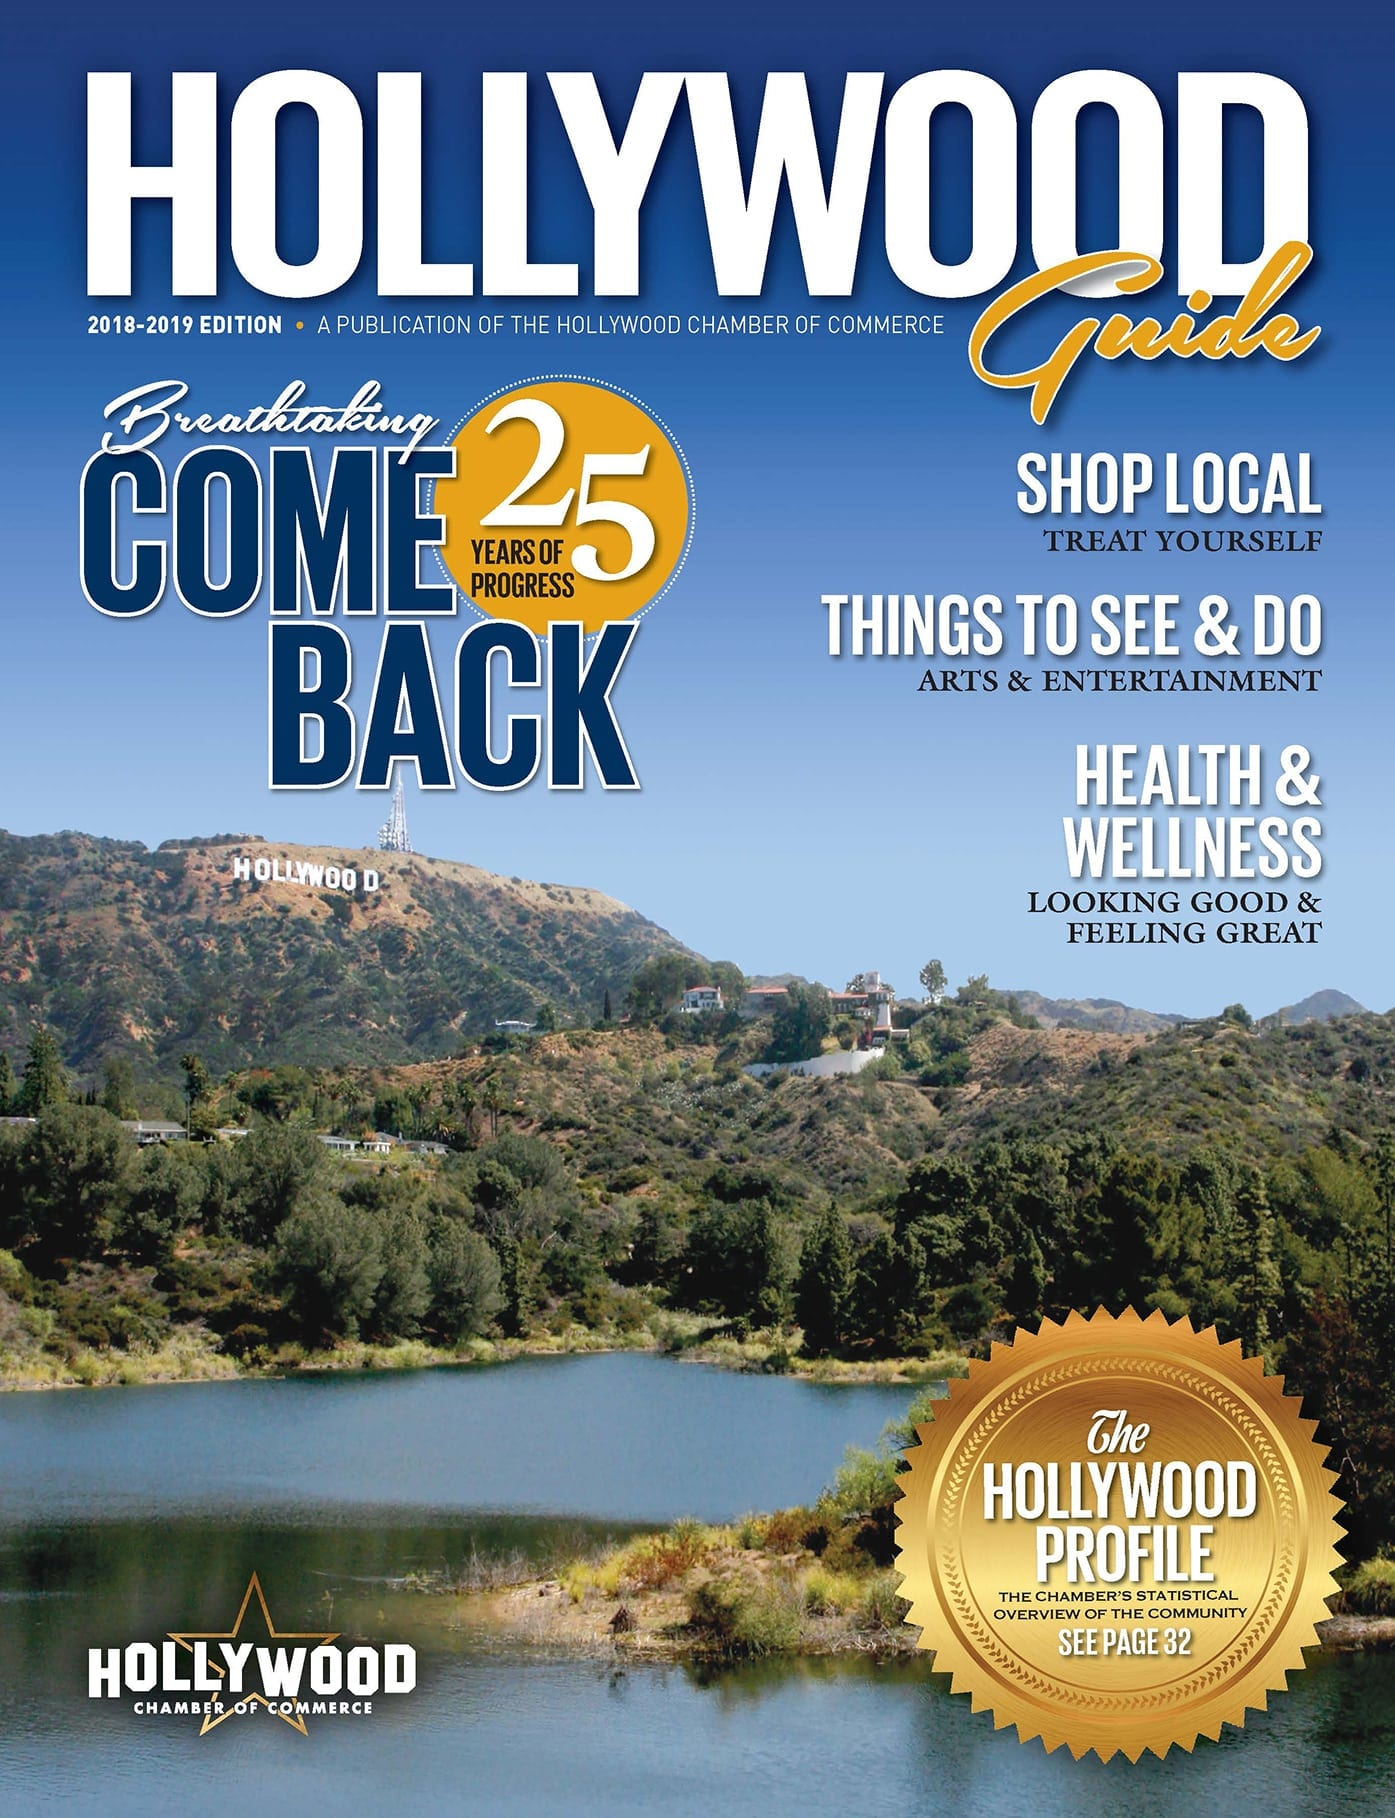 Hollywood Chamber of Commerce Business and Community Profile